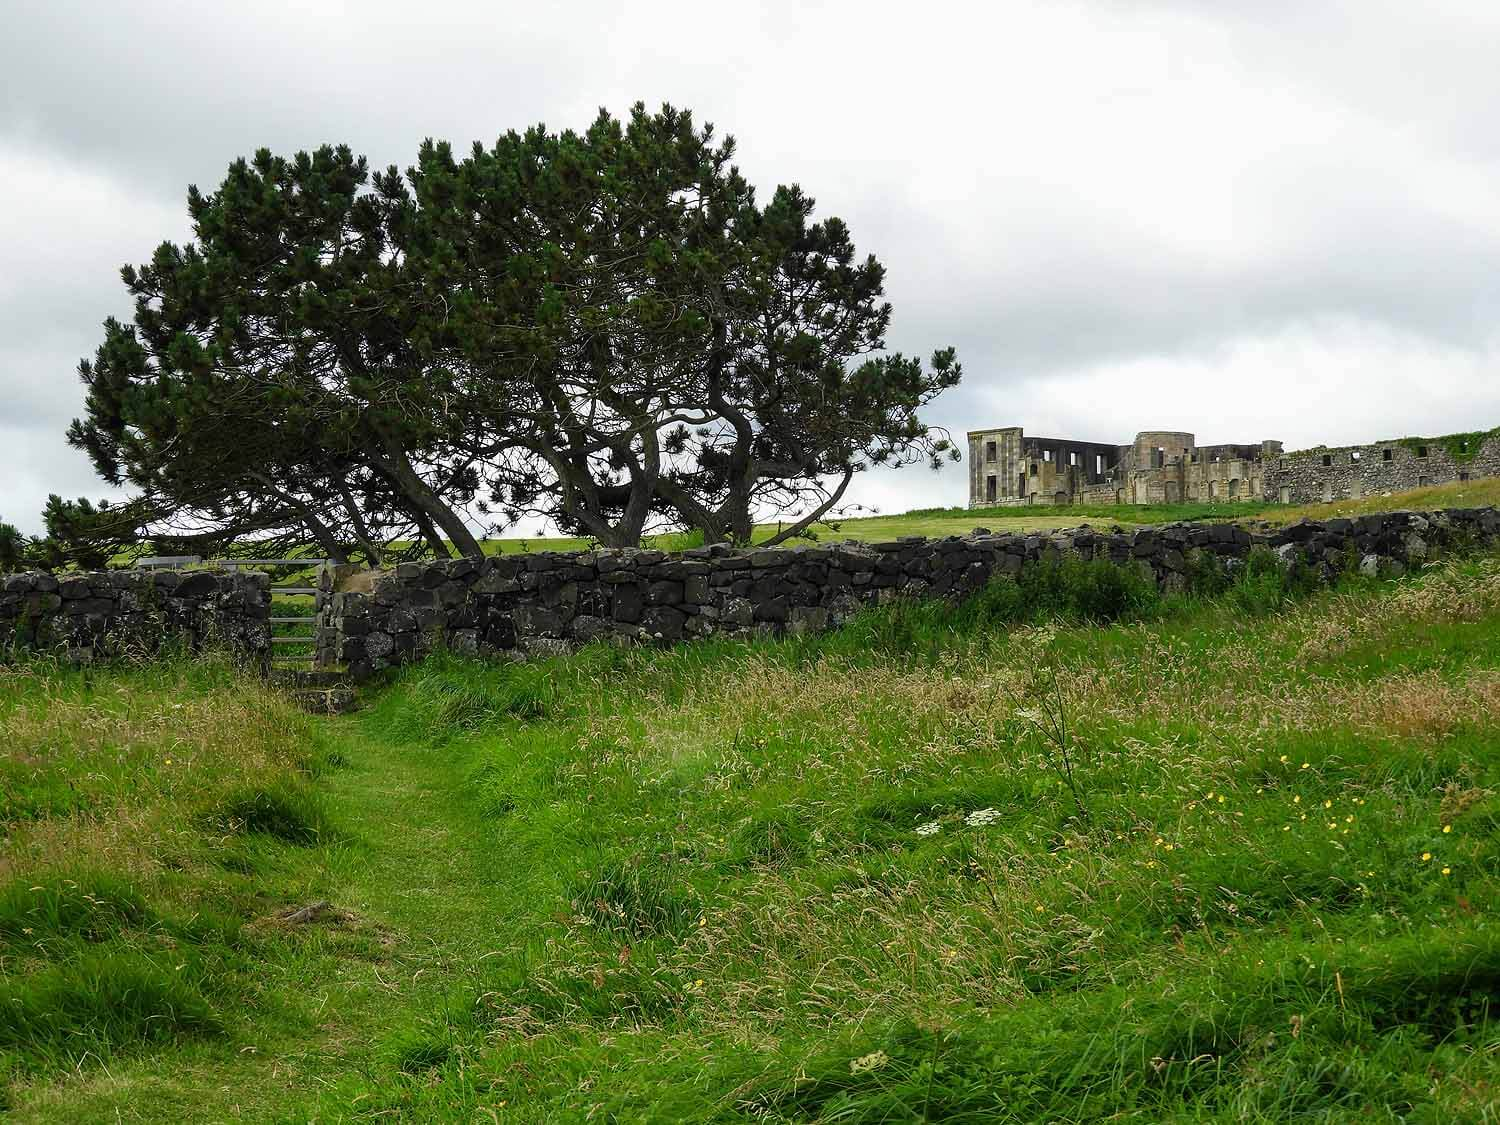 northern-ireland-coast-downhill-demesne-national-trust-tree-ruins-mansion.jpg